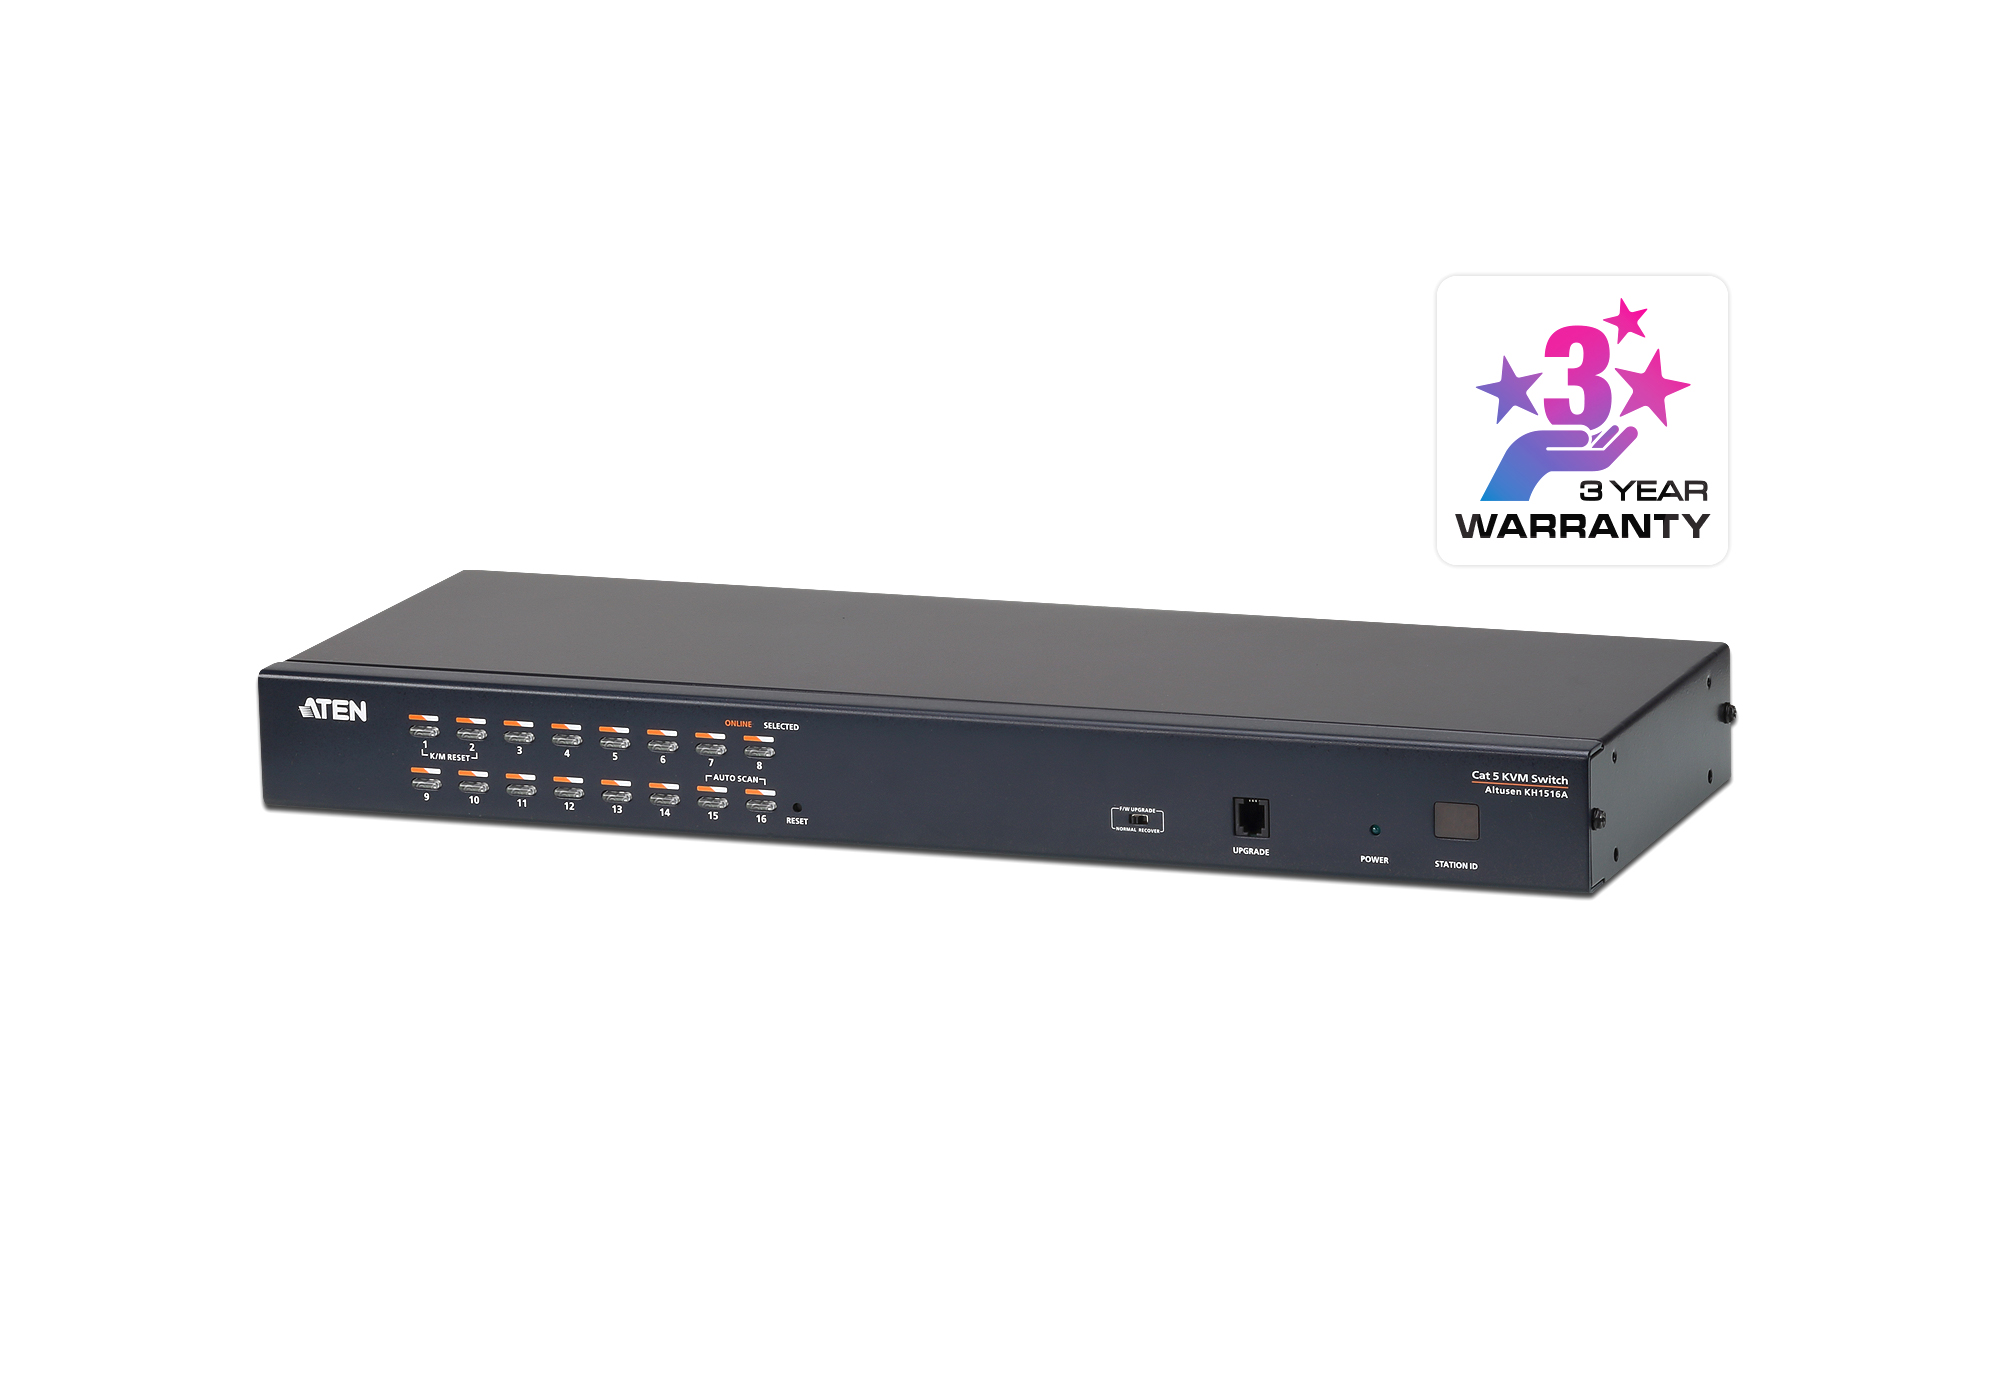 16 port cat 5 kvm switch daisy chain port kh1516a aten cat 5 16 port cat 5 kvm switch daisy chain port 1